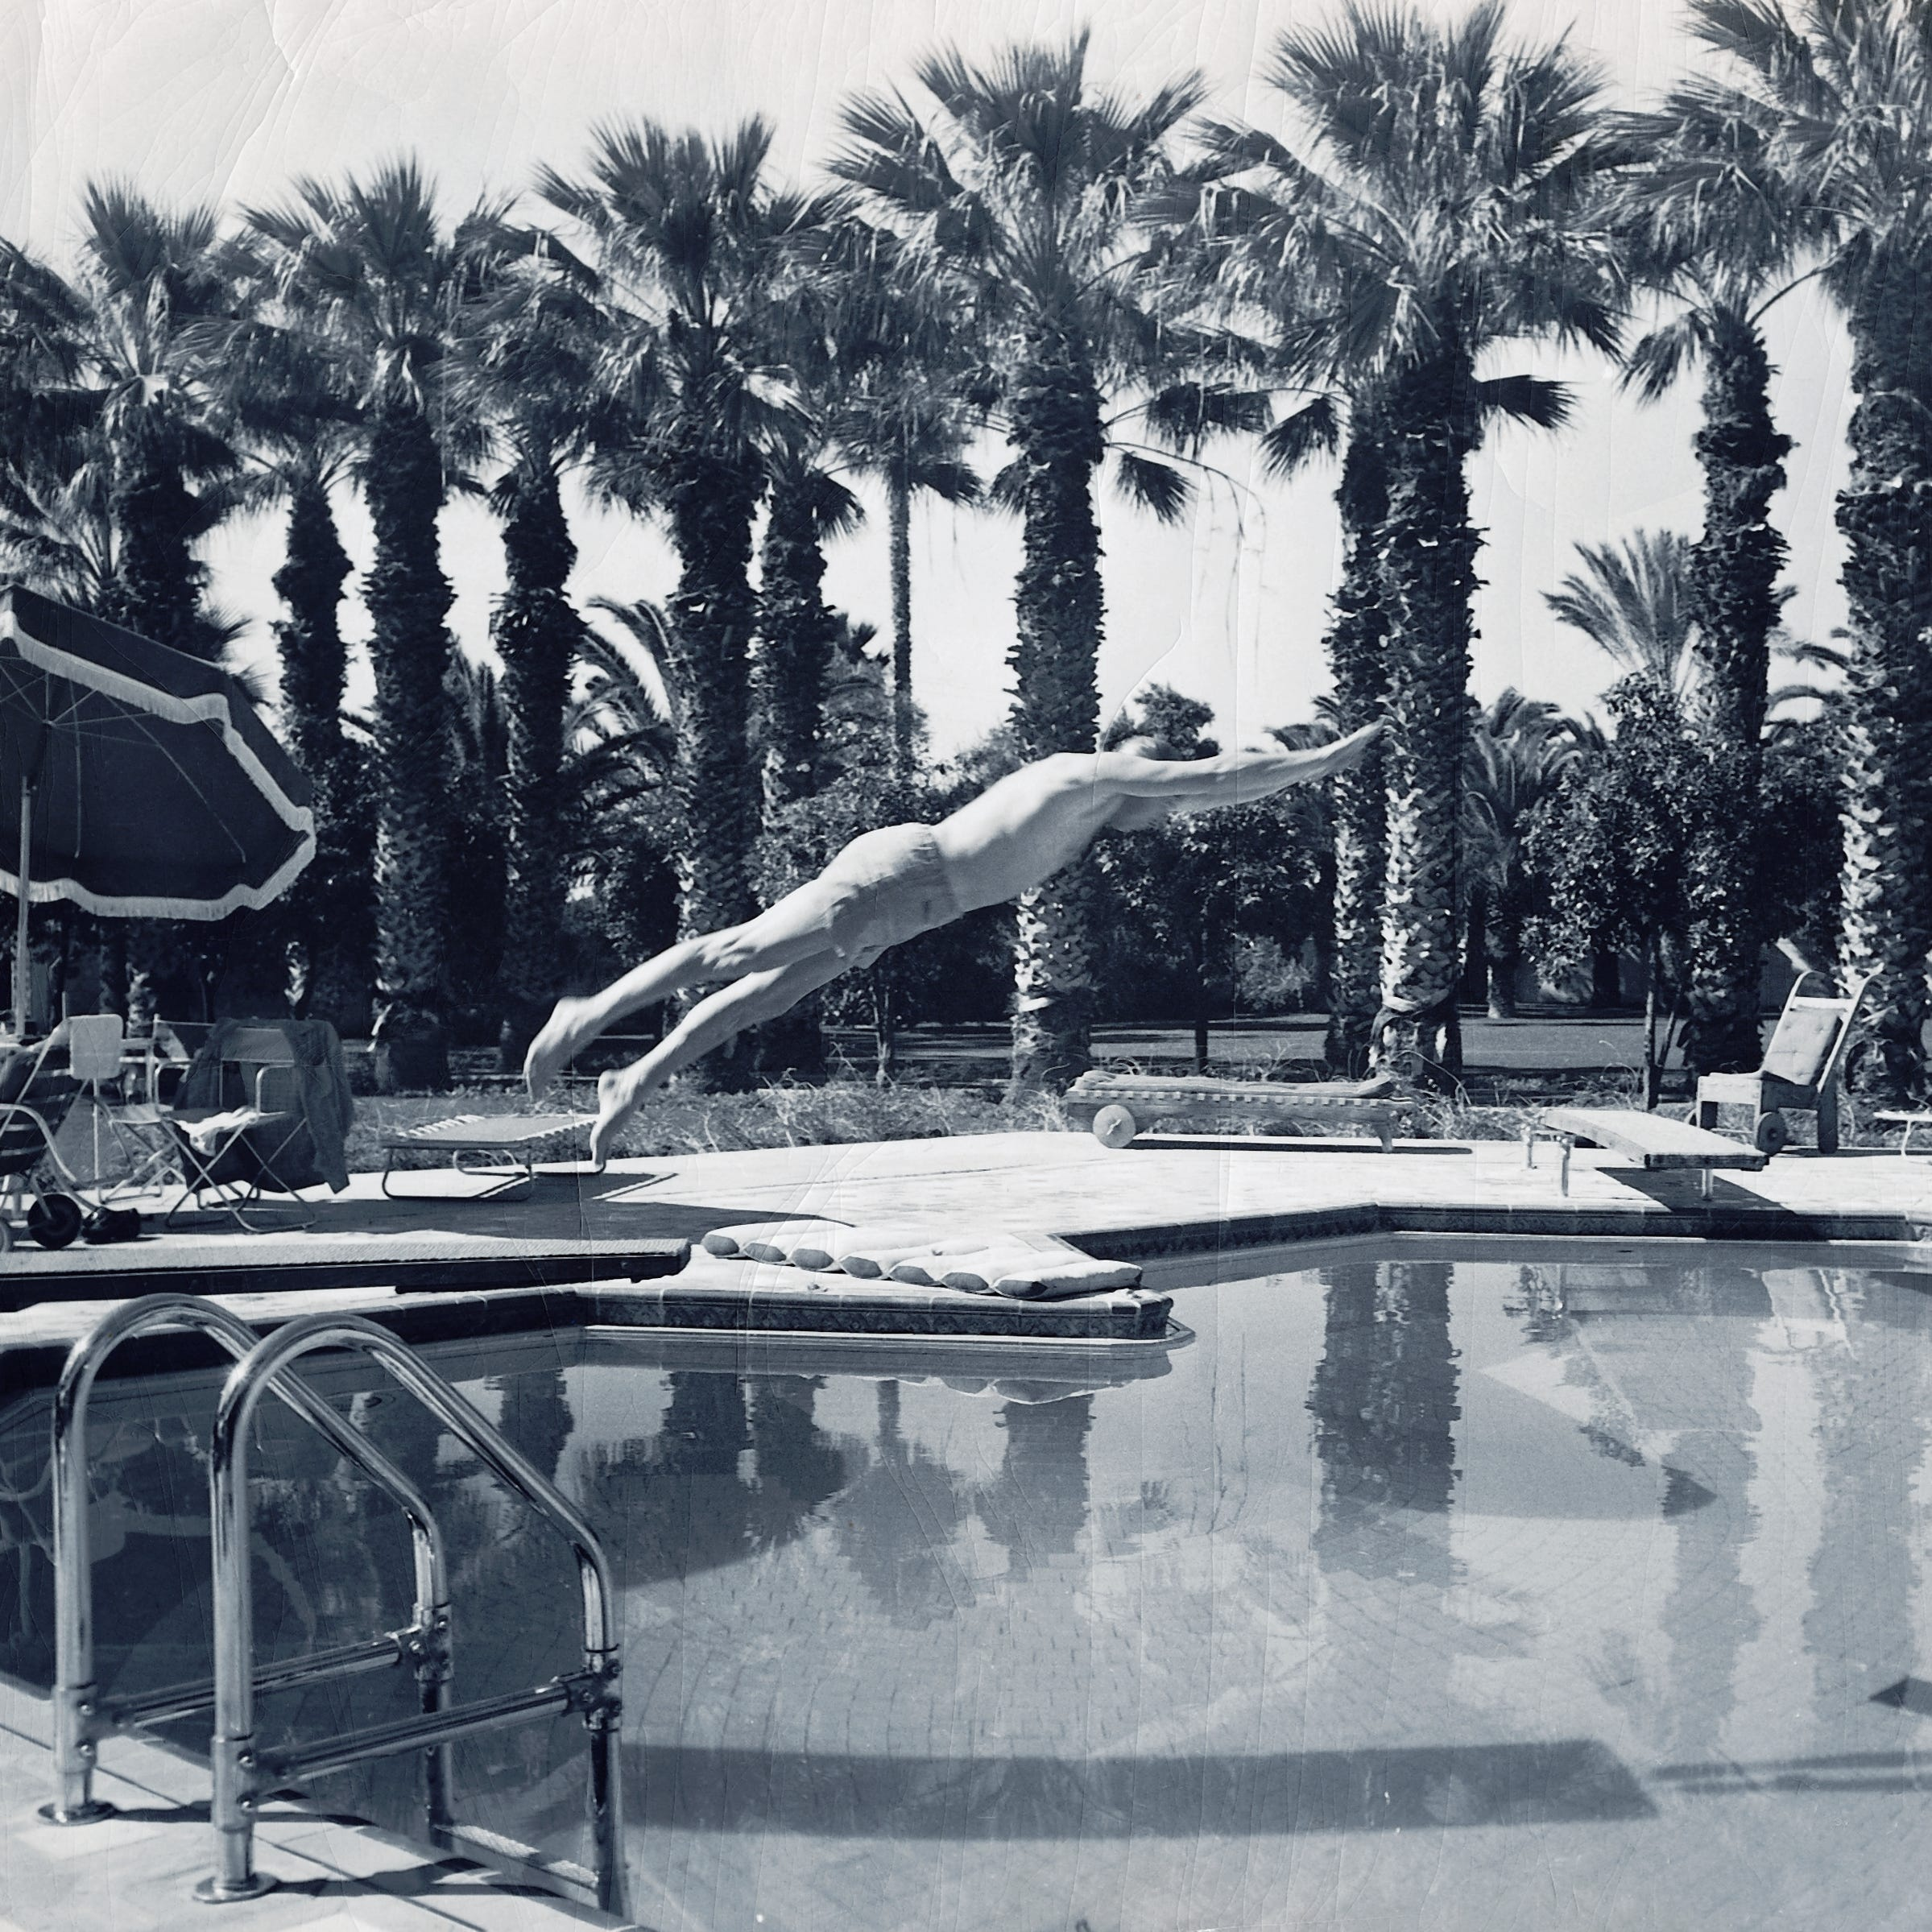 Look how much the Royal Palms Resort and Spa has changed over the years